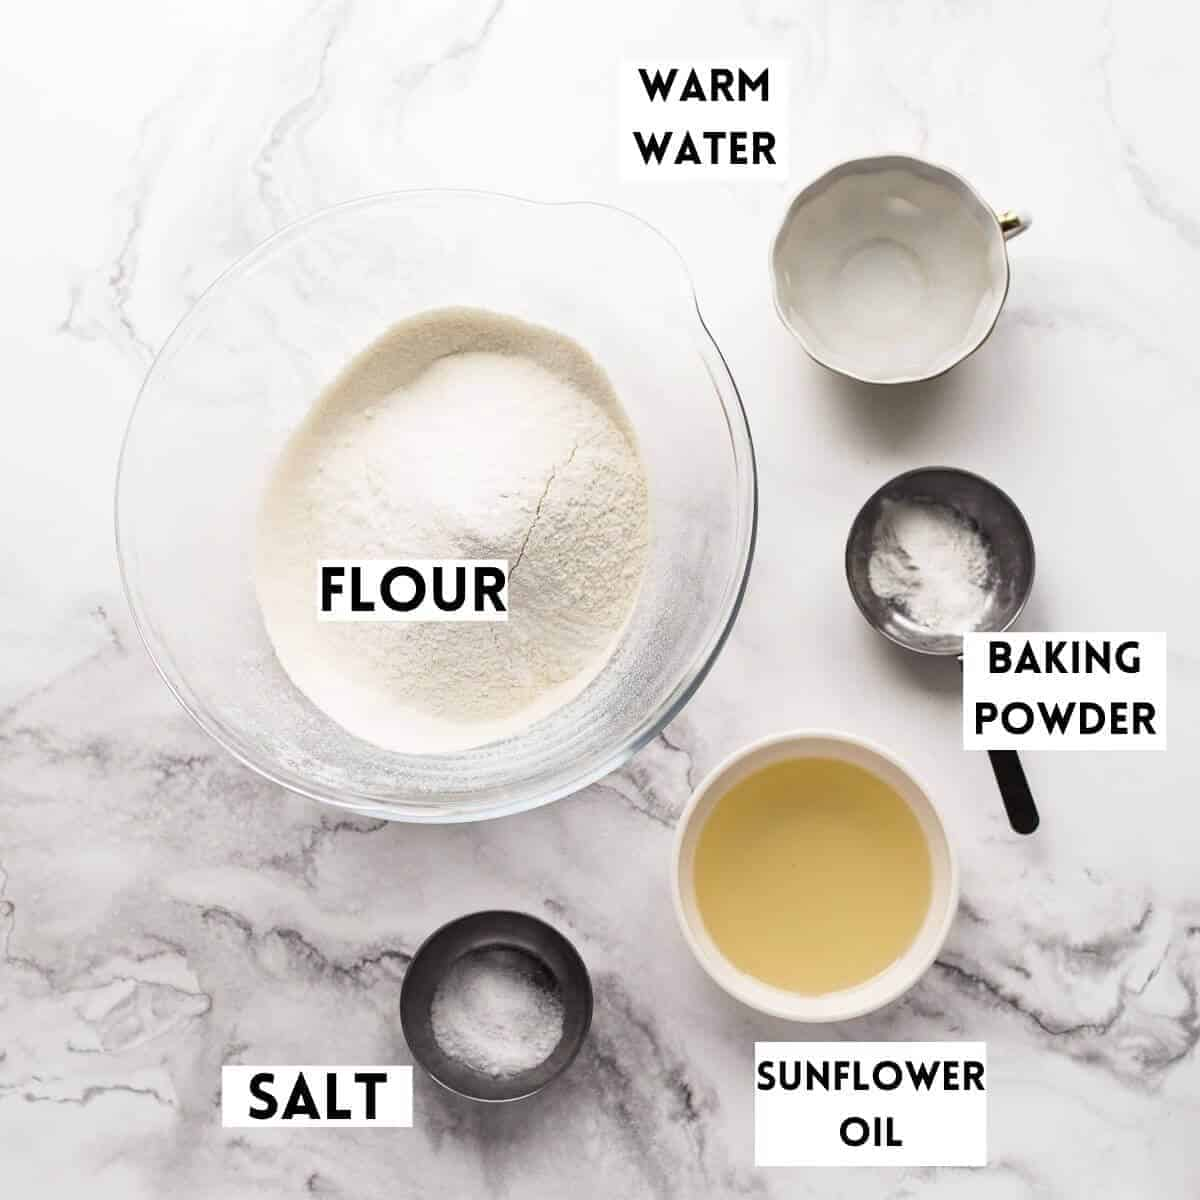 ingredients-for-making-homemade-flour-tortillas on marble background